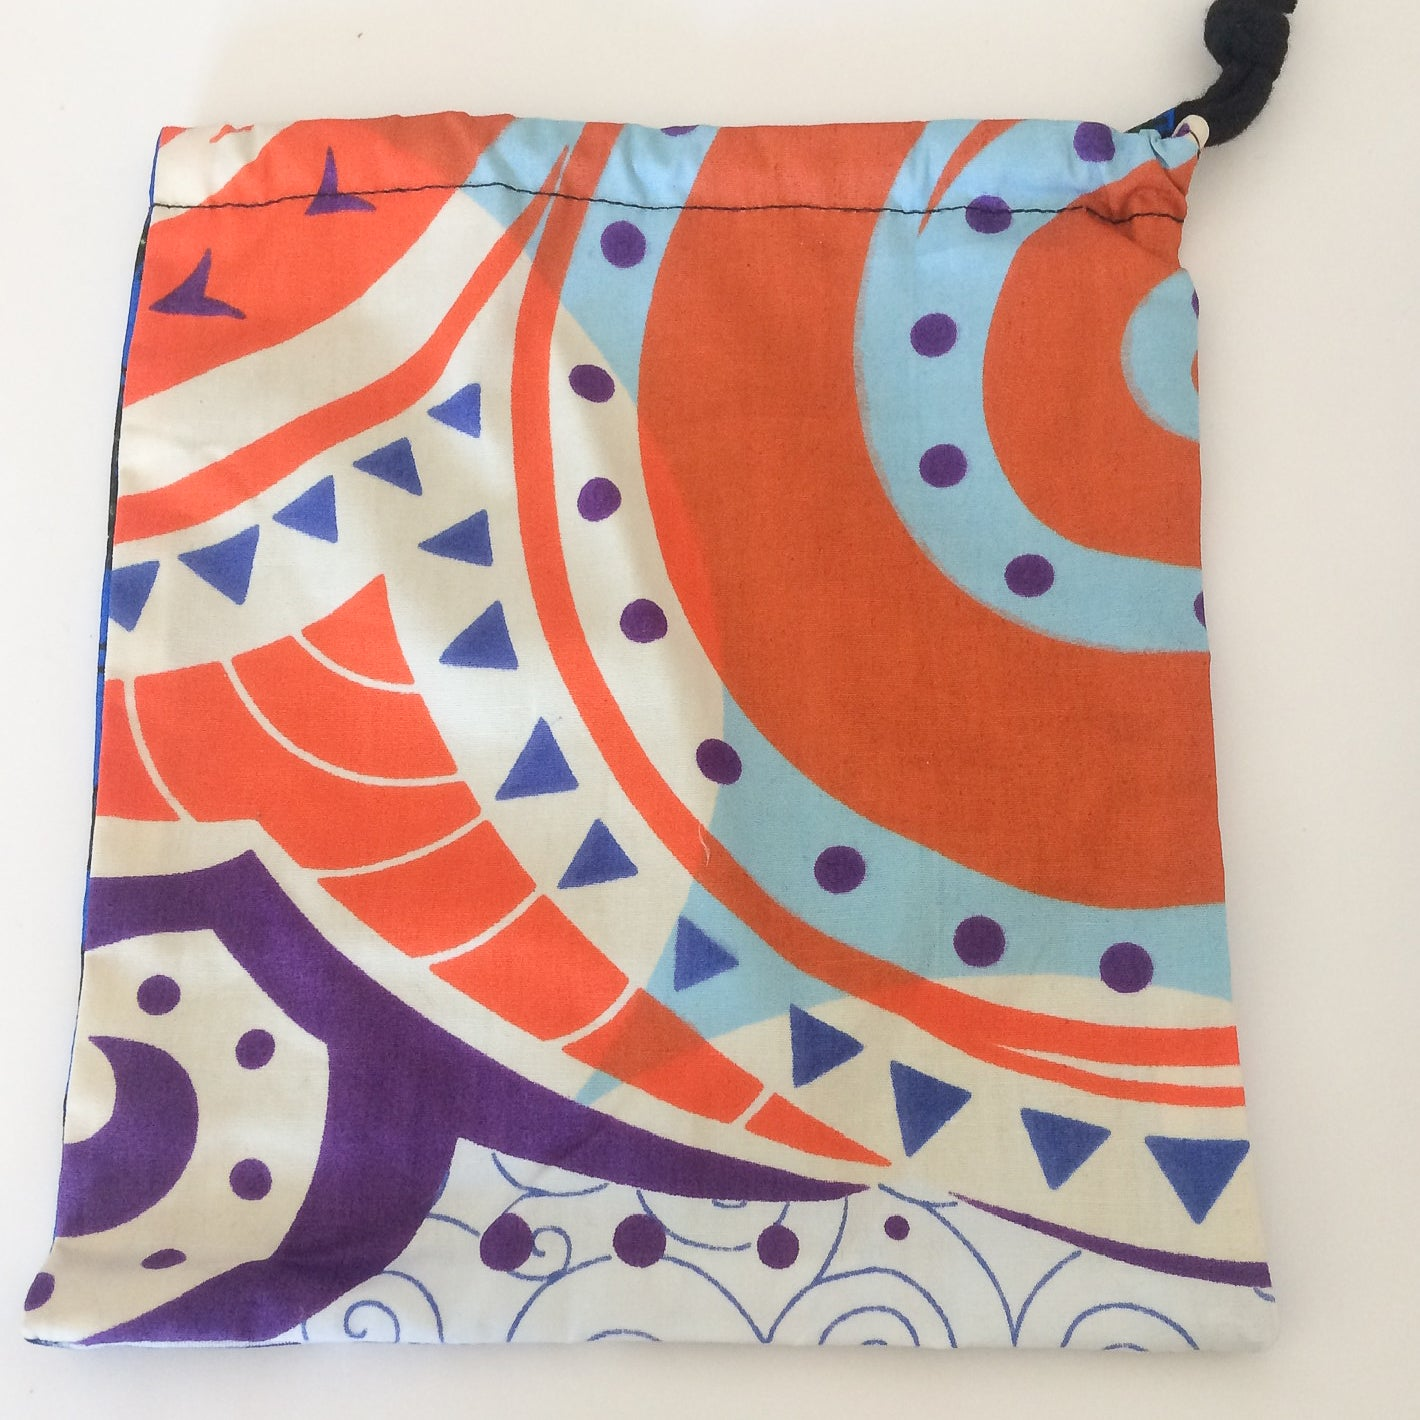 Drawstring bag - Blue swirls / purple & orange spirals, large